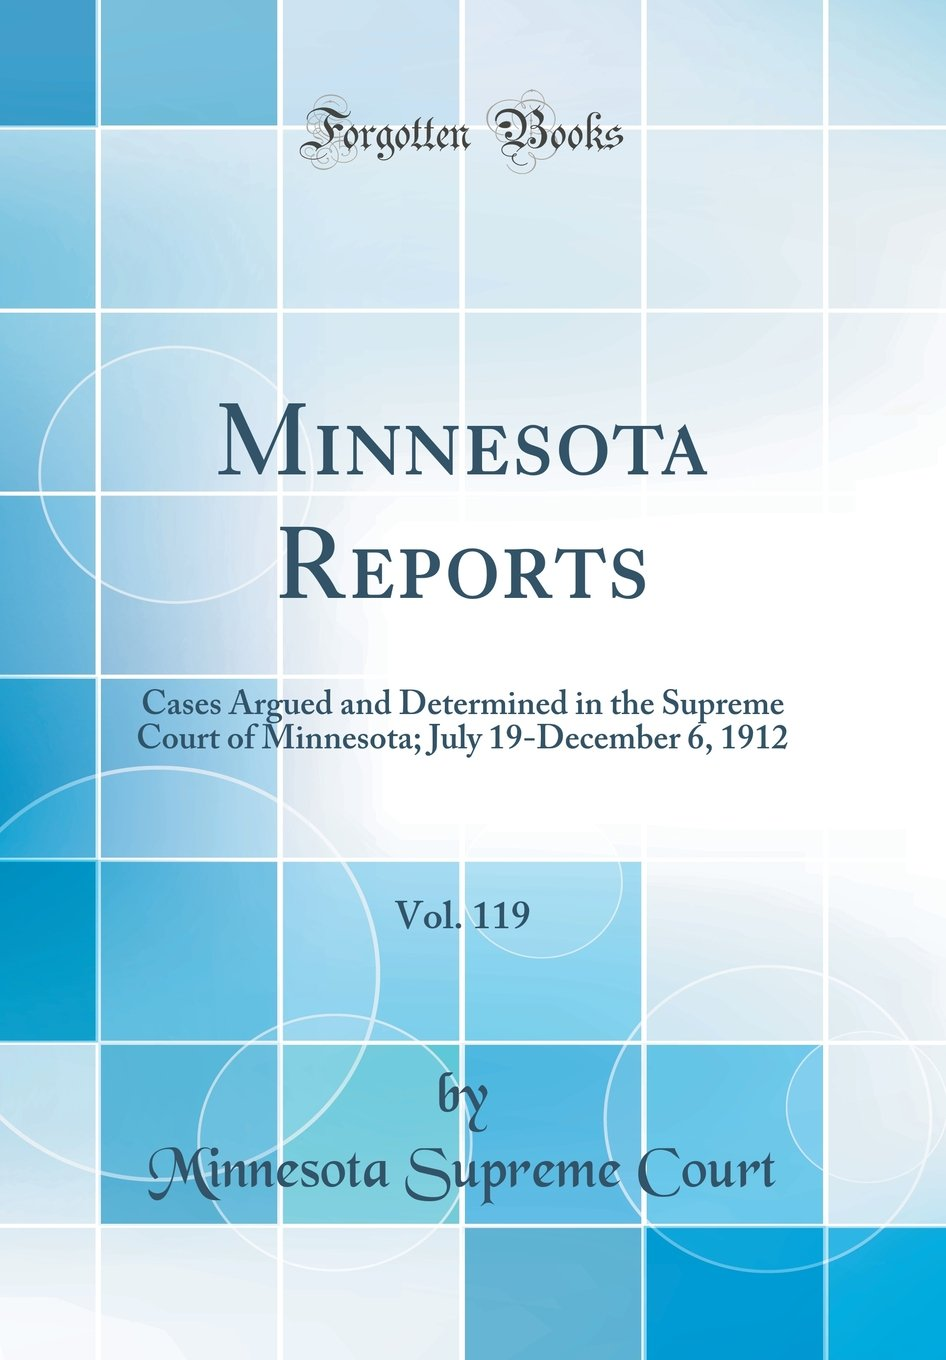 Minnesota Reports, Vol. 119: Cases Argued and Determined in the Supreme Court of Minnesota; July 19-December 6, 1912 (Classic Reprint) PDF